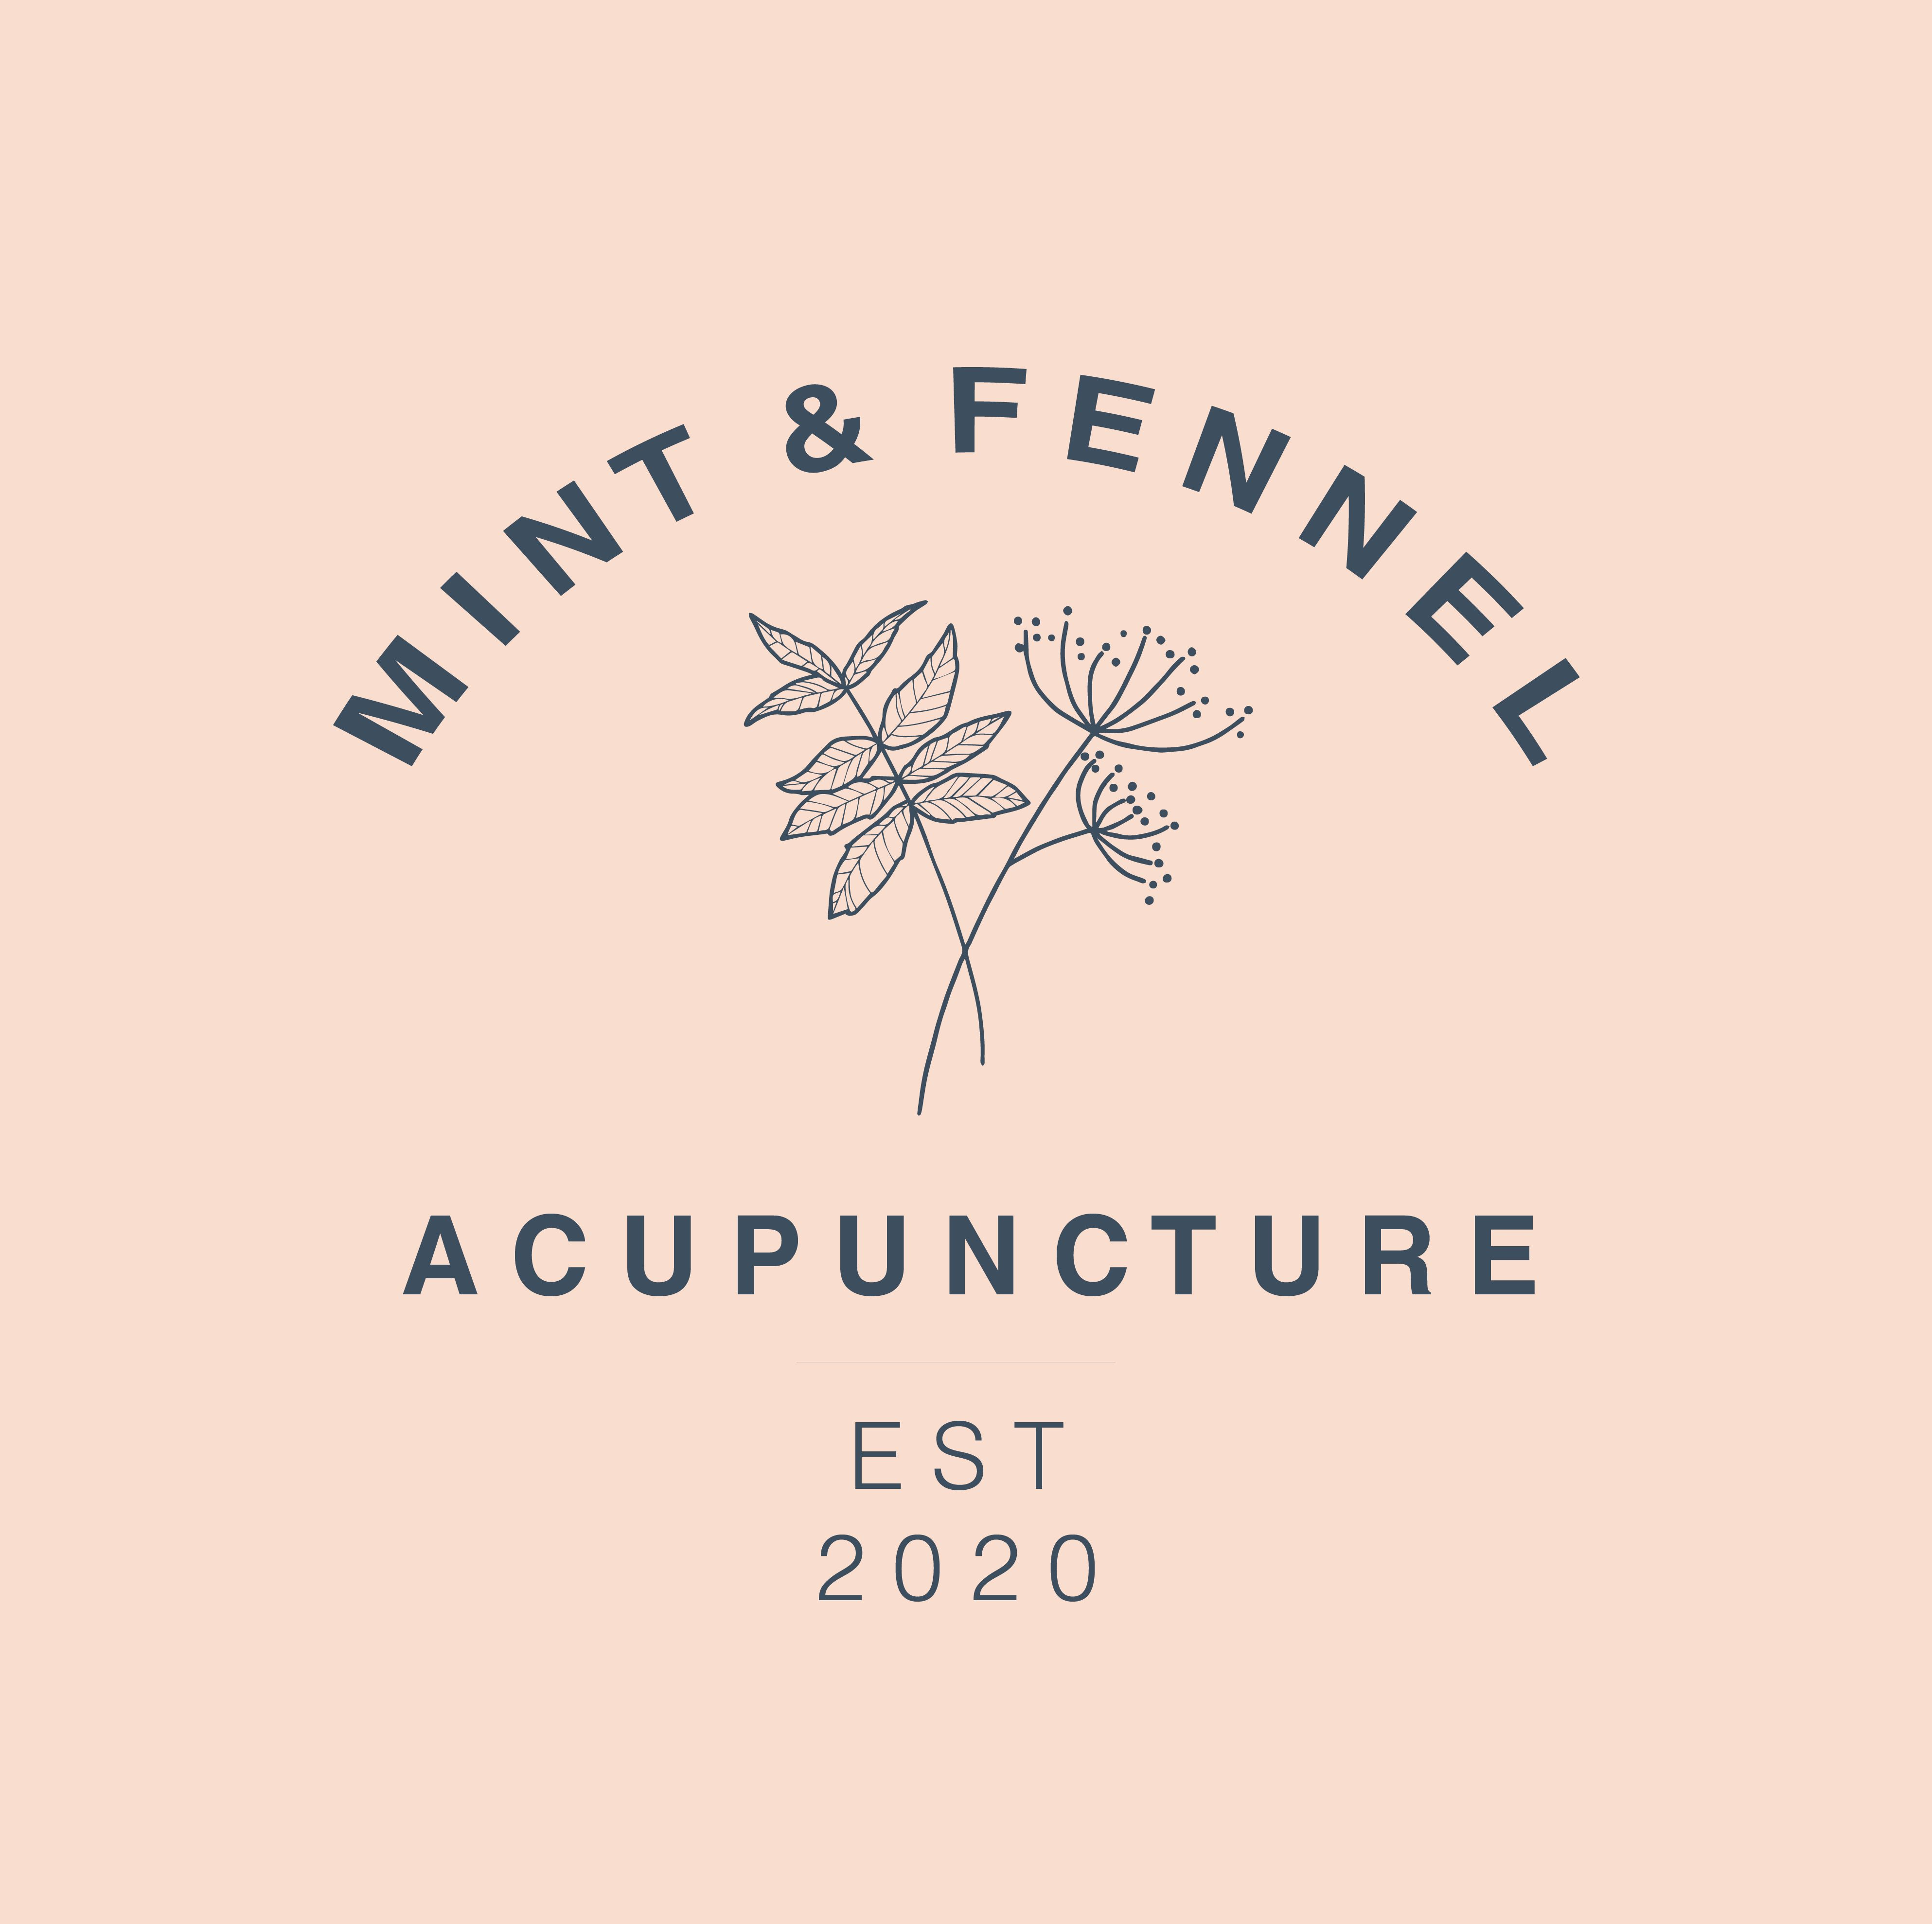 Mint & Fennel Acupuncture